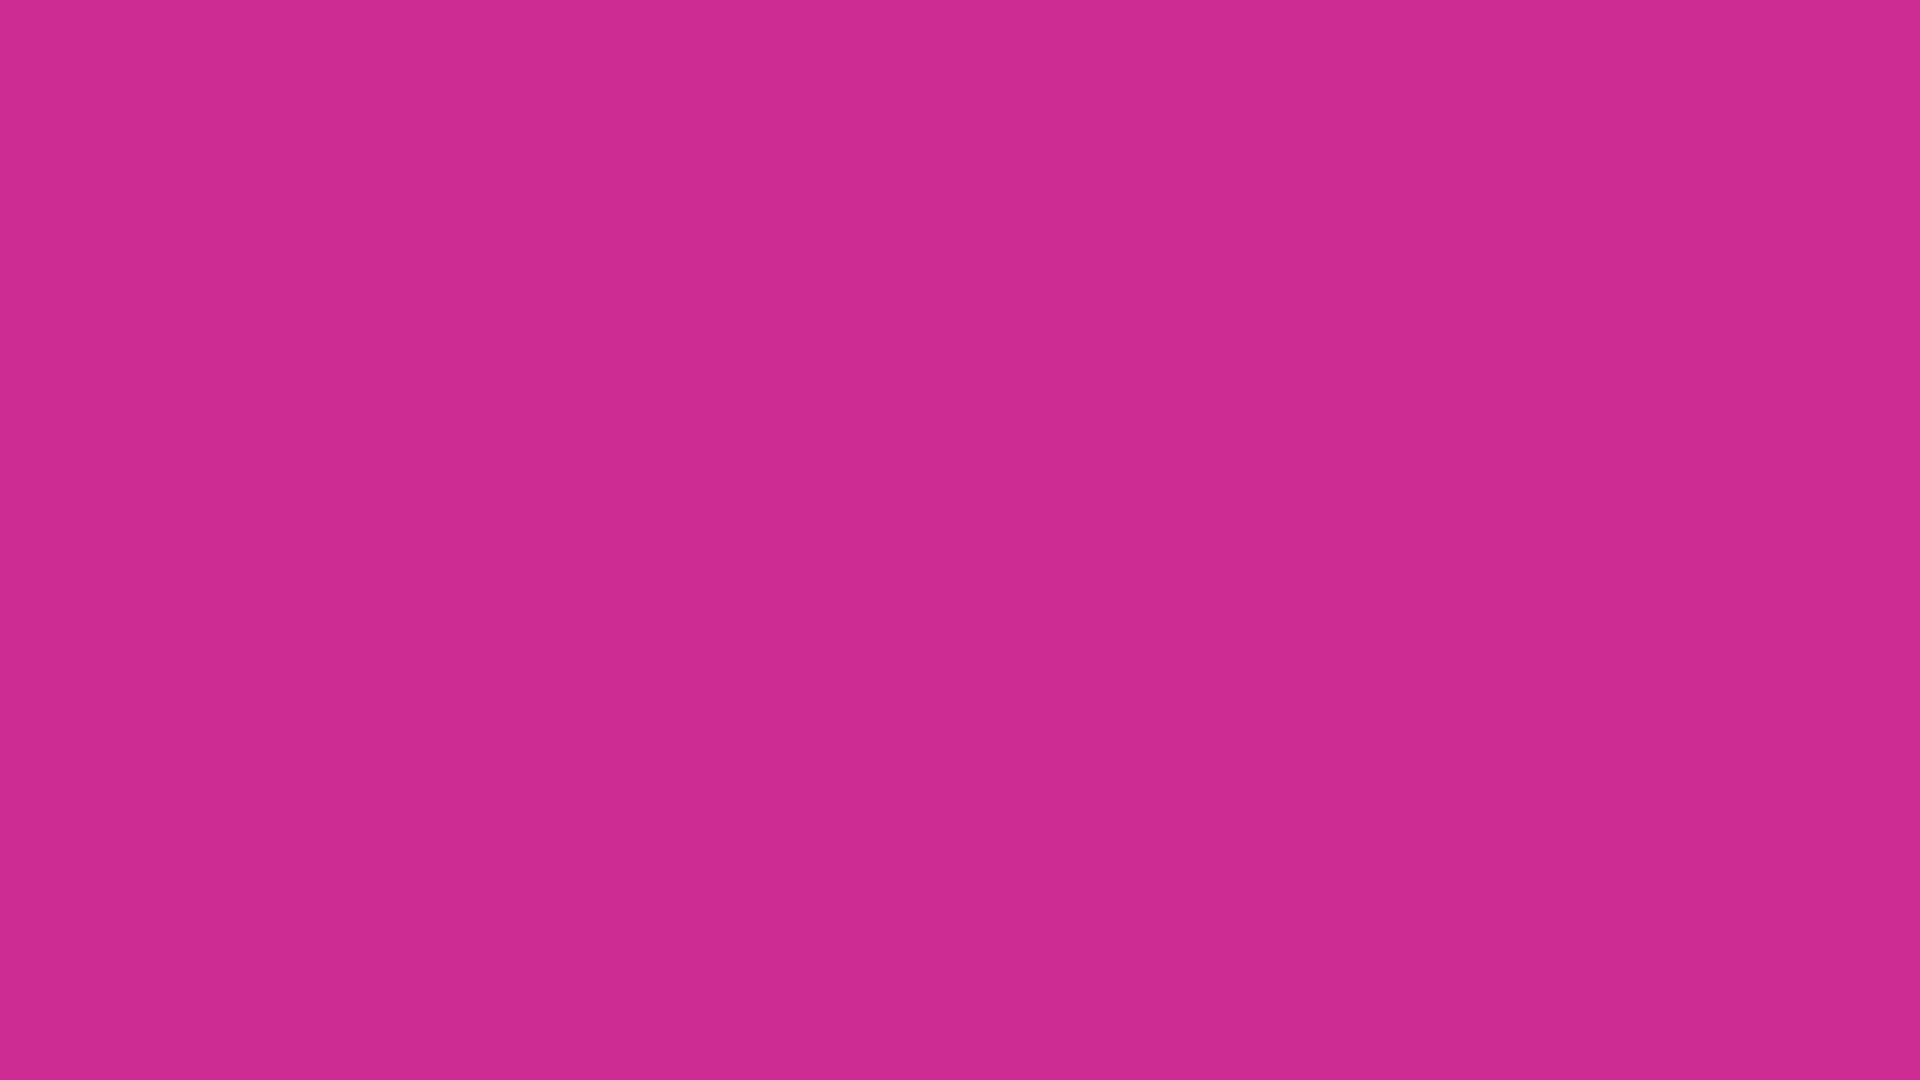 1920x1080 Royal Fuchsia Solid Color Background